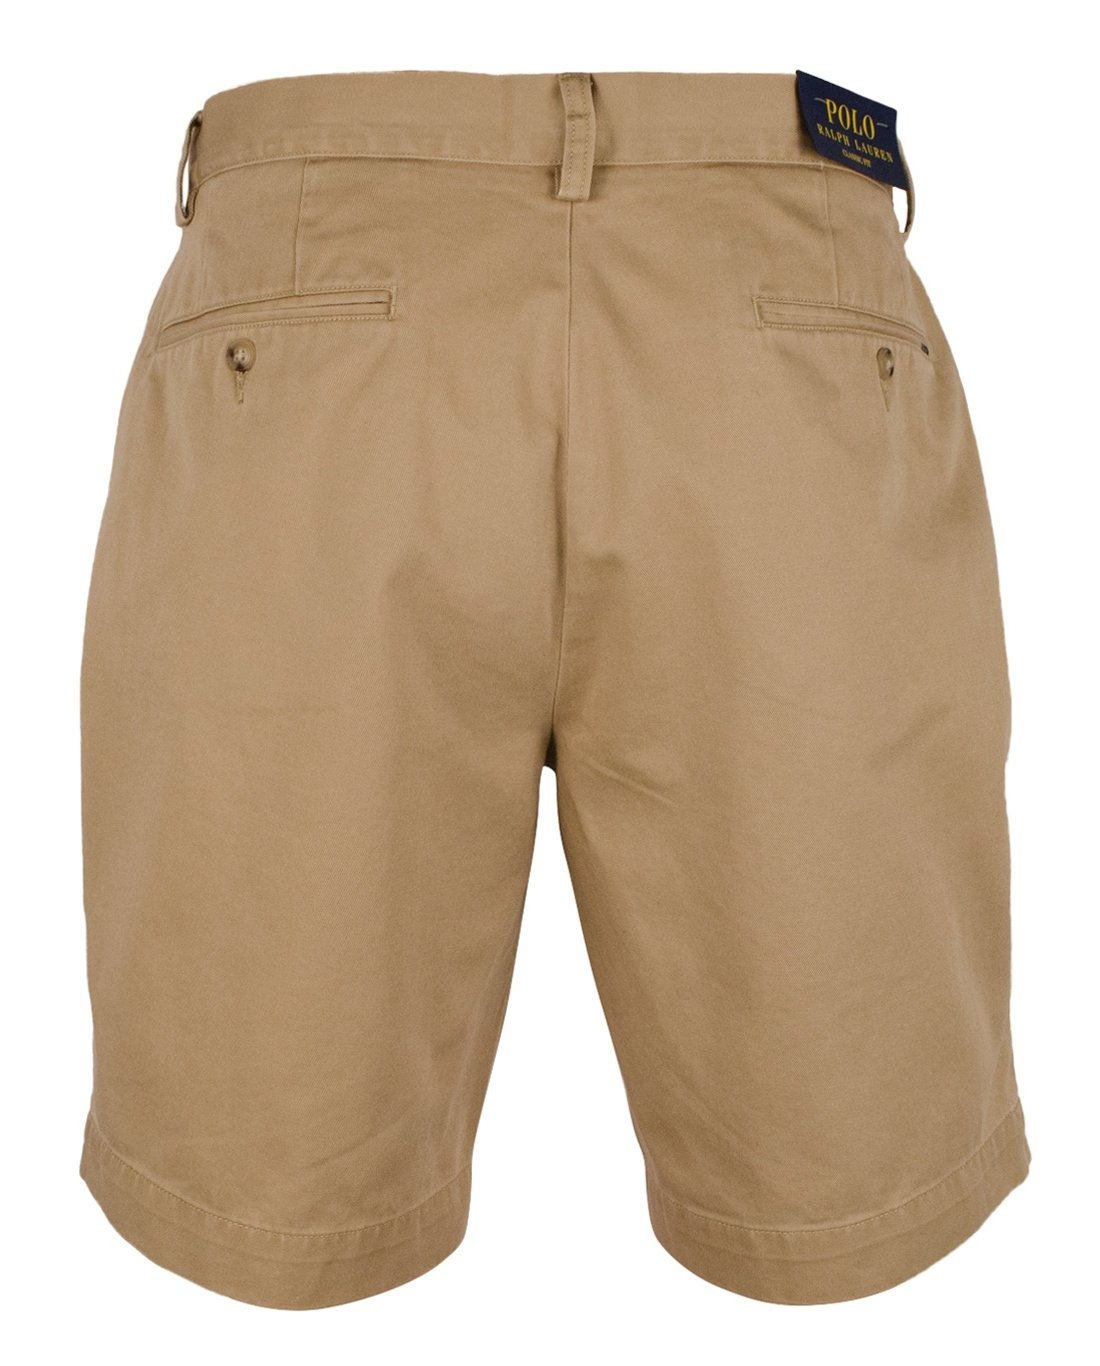 Polo Ralph Lauren Big and Tall Mens Classic Fit Suffield Short 50B Hudson Tan by Polo Ralph Lauren (Image #2)